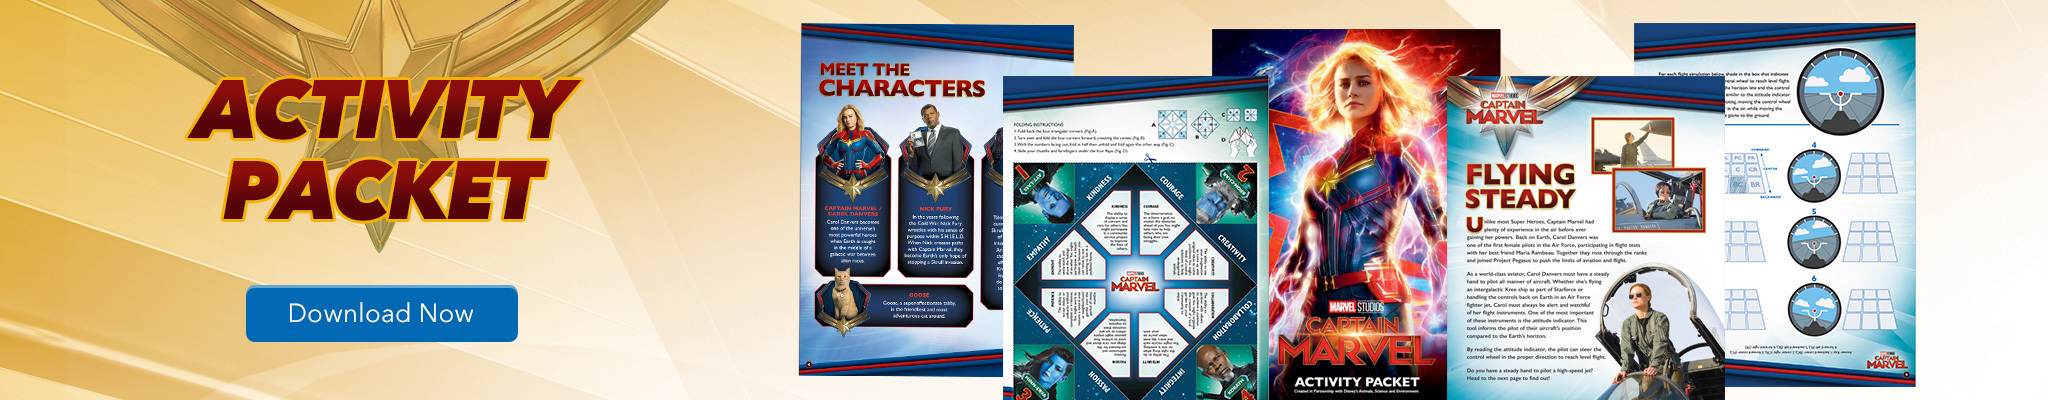 Captain Marvel Activity Packet